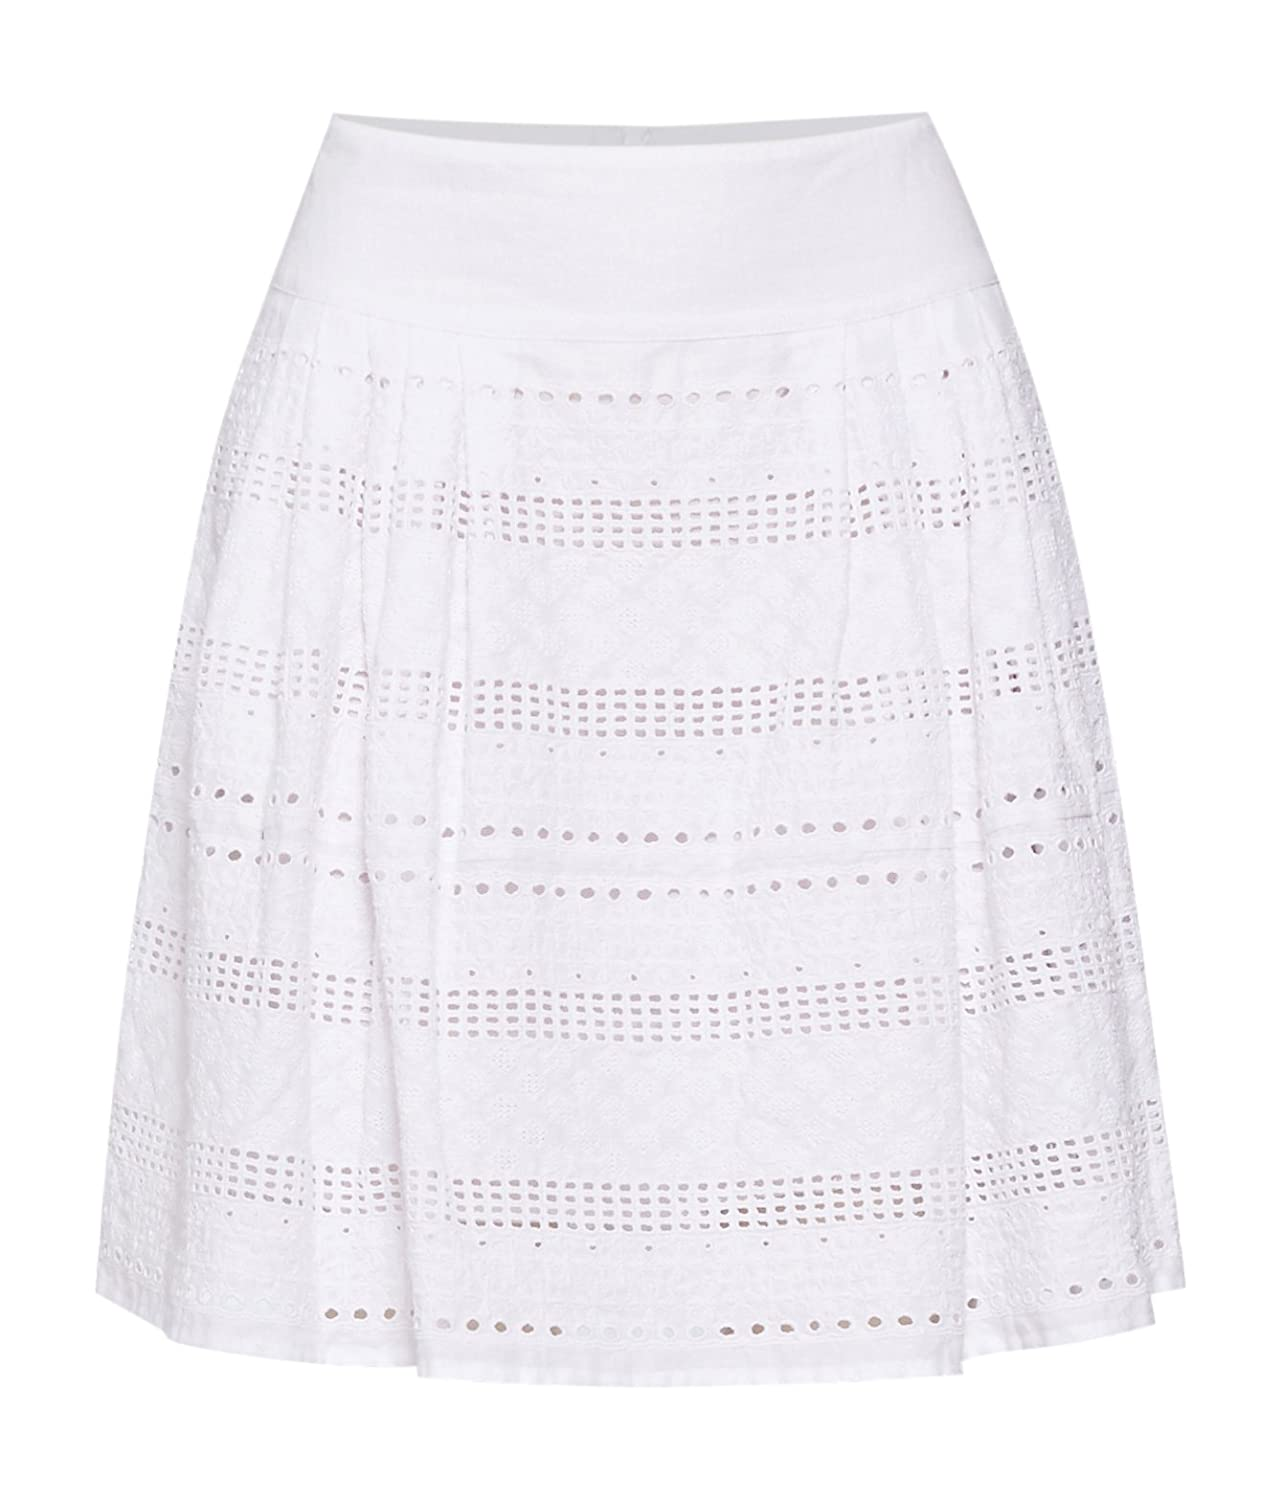 With Mastercard Womens Garda Skirt Pennyblack Discount Shop Outlet Classic Buy Cheap Shopping Online XZvyGkRcqm